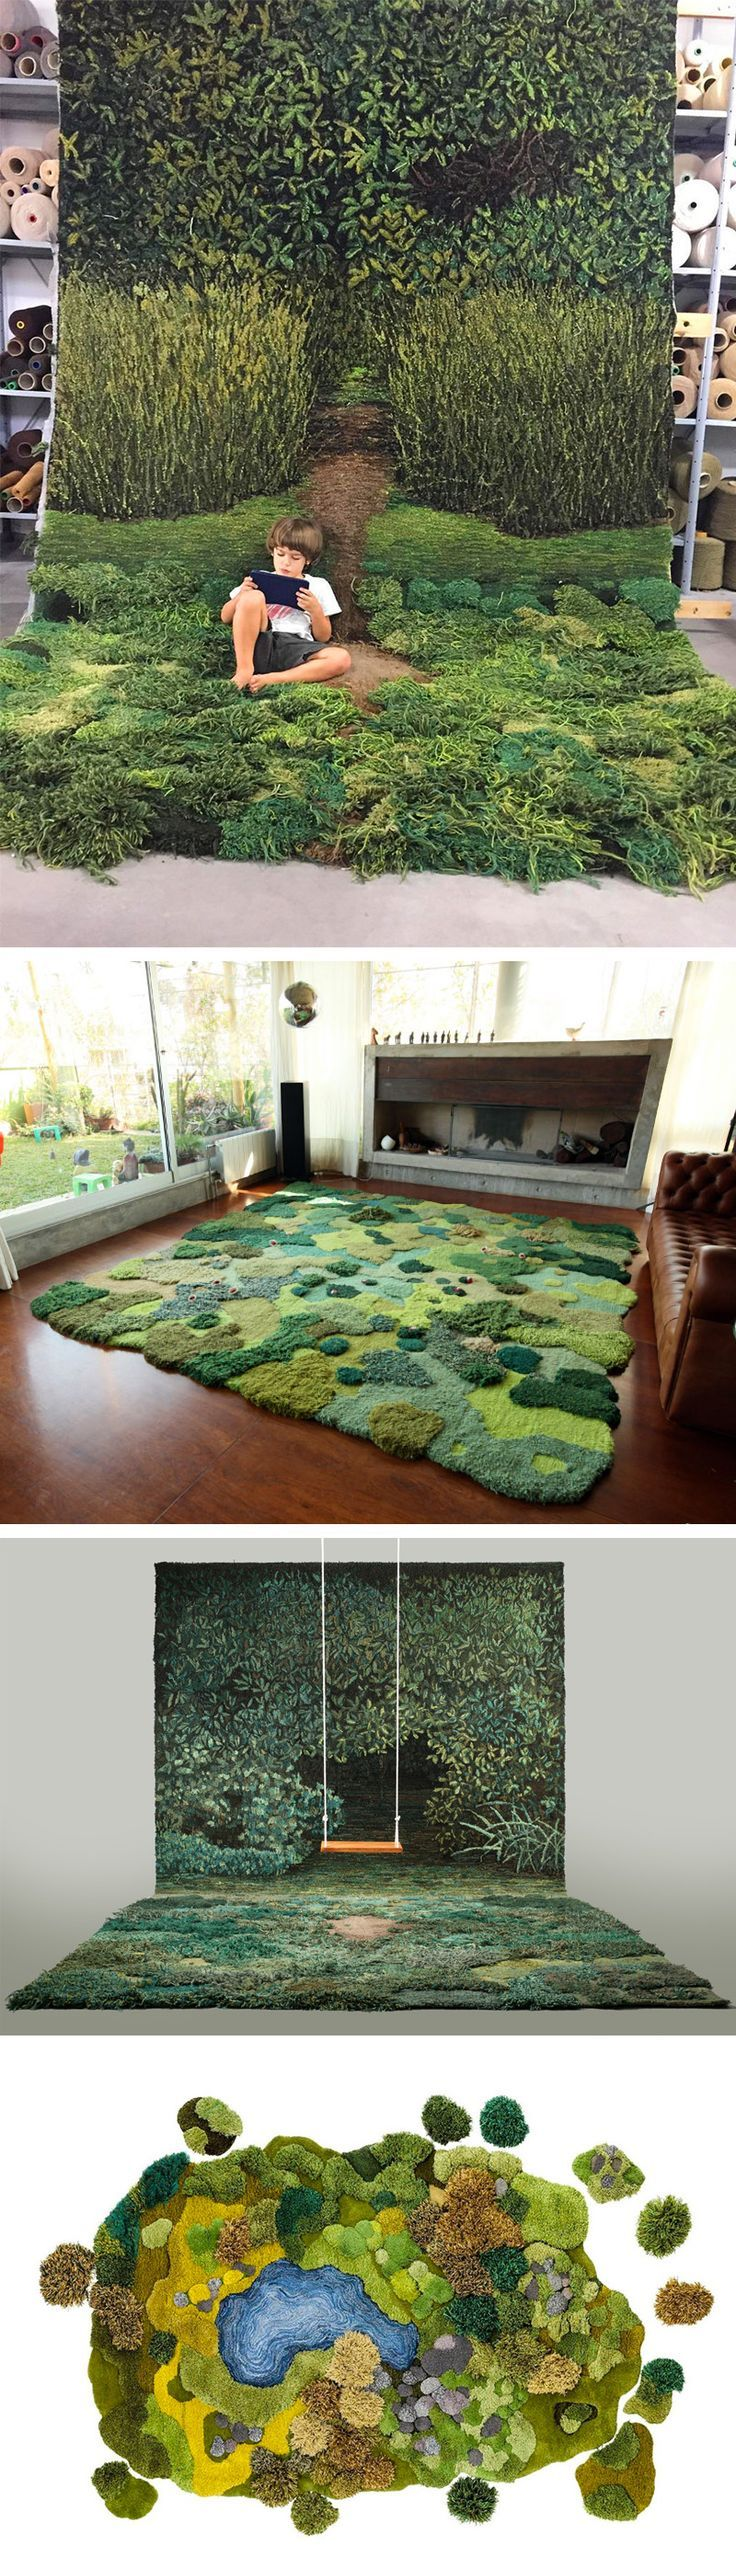 One-of-Kind Wool Rug Artworks by Alexandra Kehayoglou Mimic Rolling Pastures and Mossy Textures